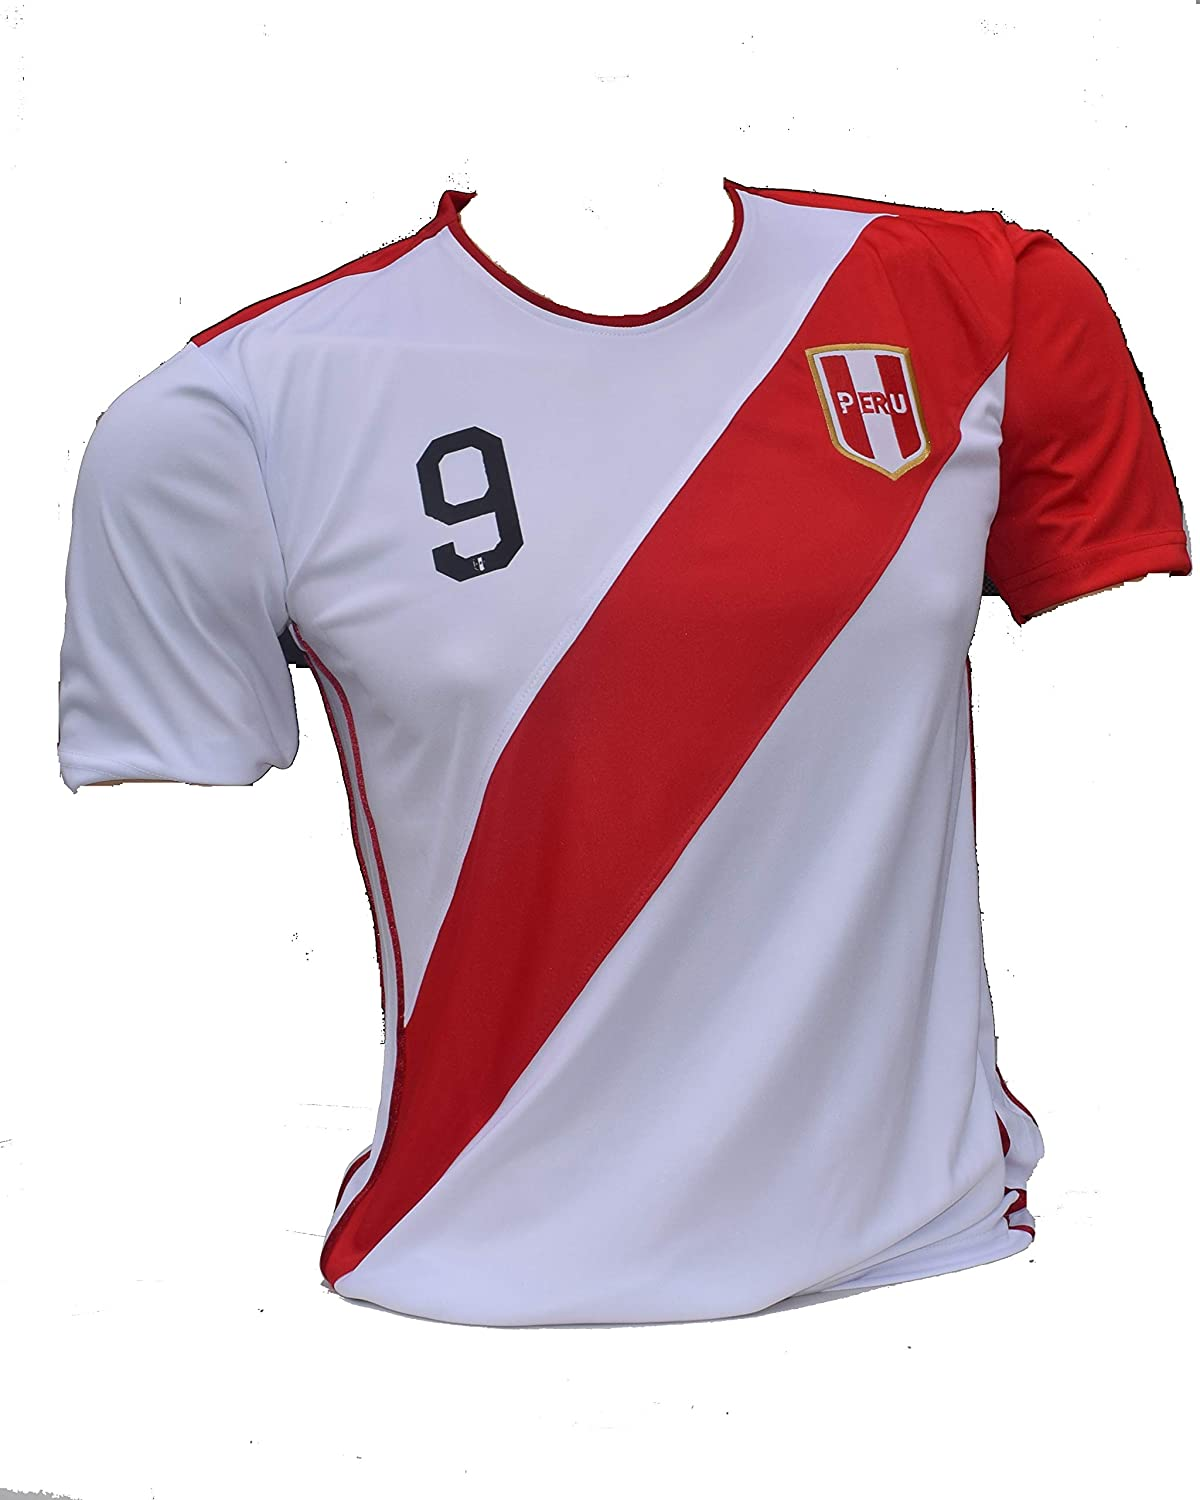 Peru Soccer Jersey for Copa America 2019 .Support Your Team Buy Now and Receive in 1-5 Days